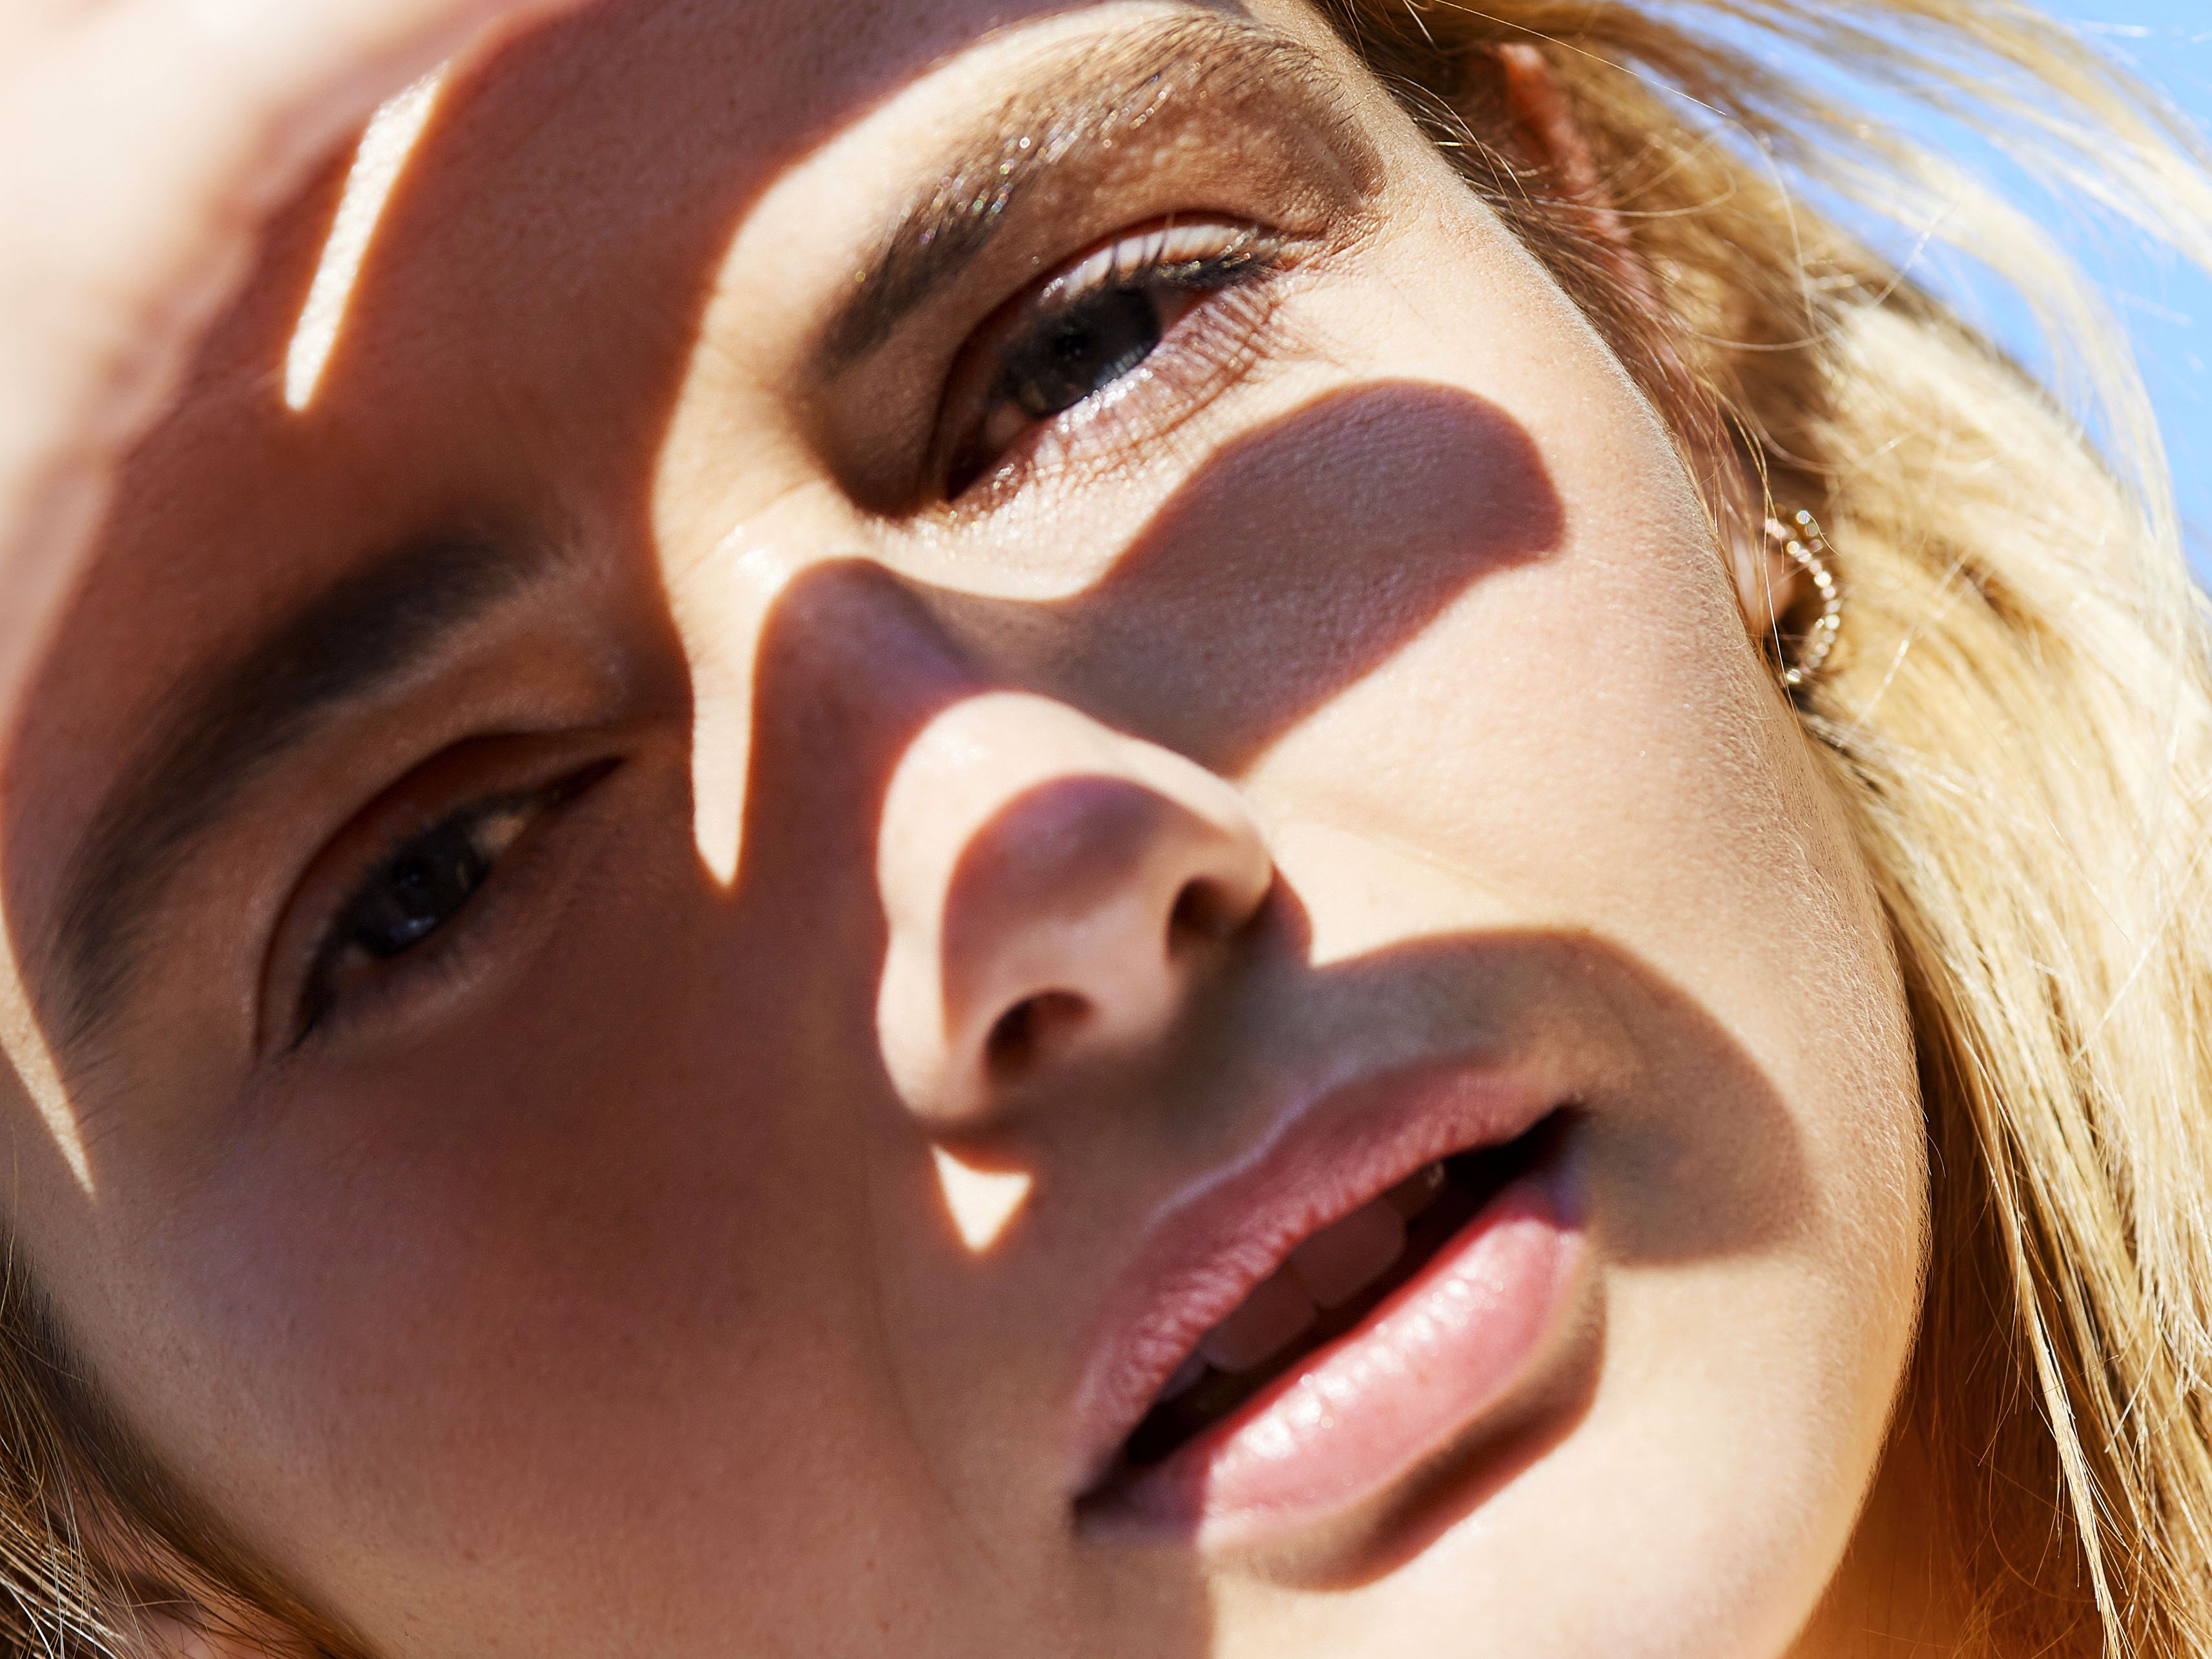 How do you get rid of redness from acne